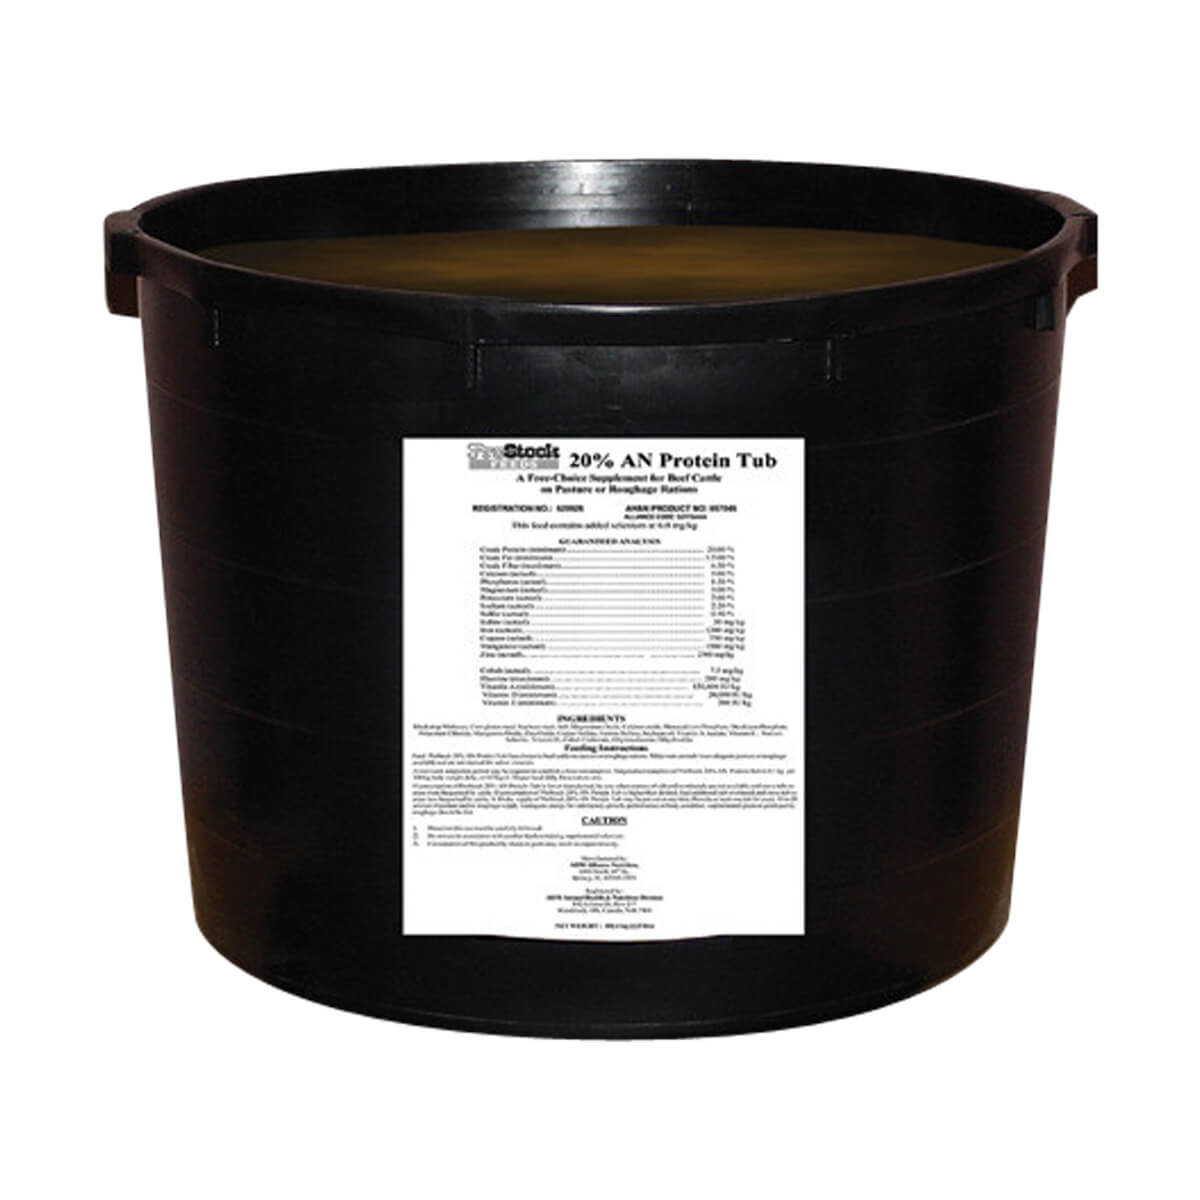 20% All Natural Protein Tub - 56 kg